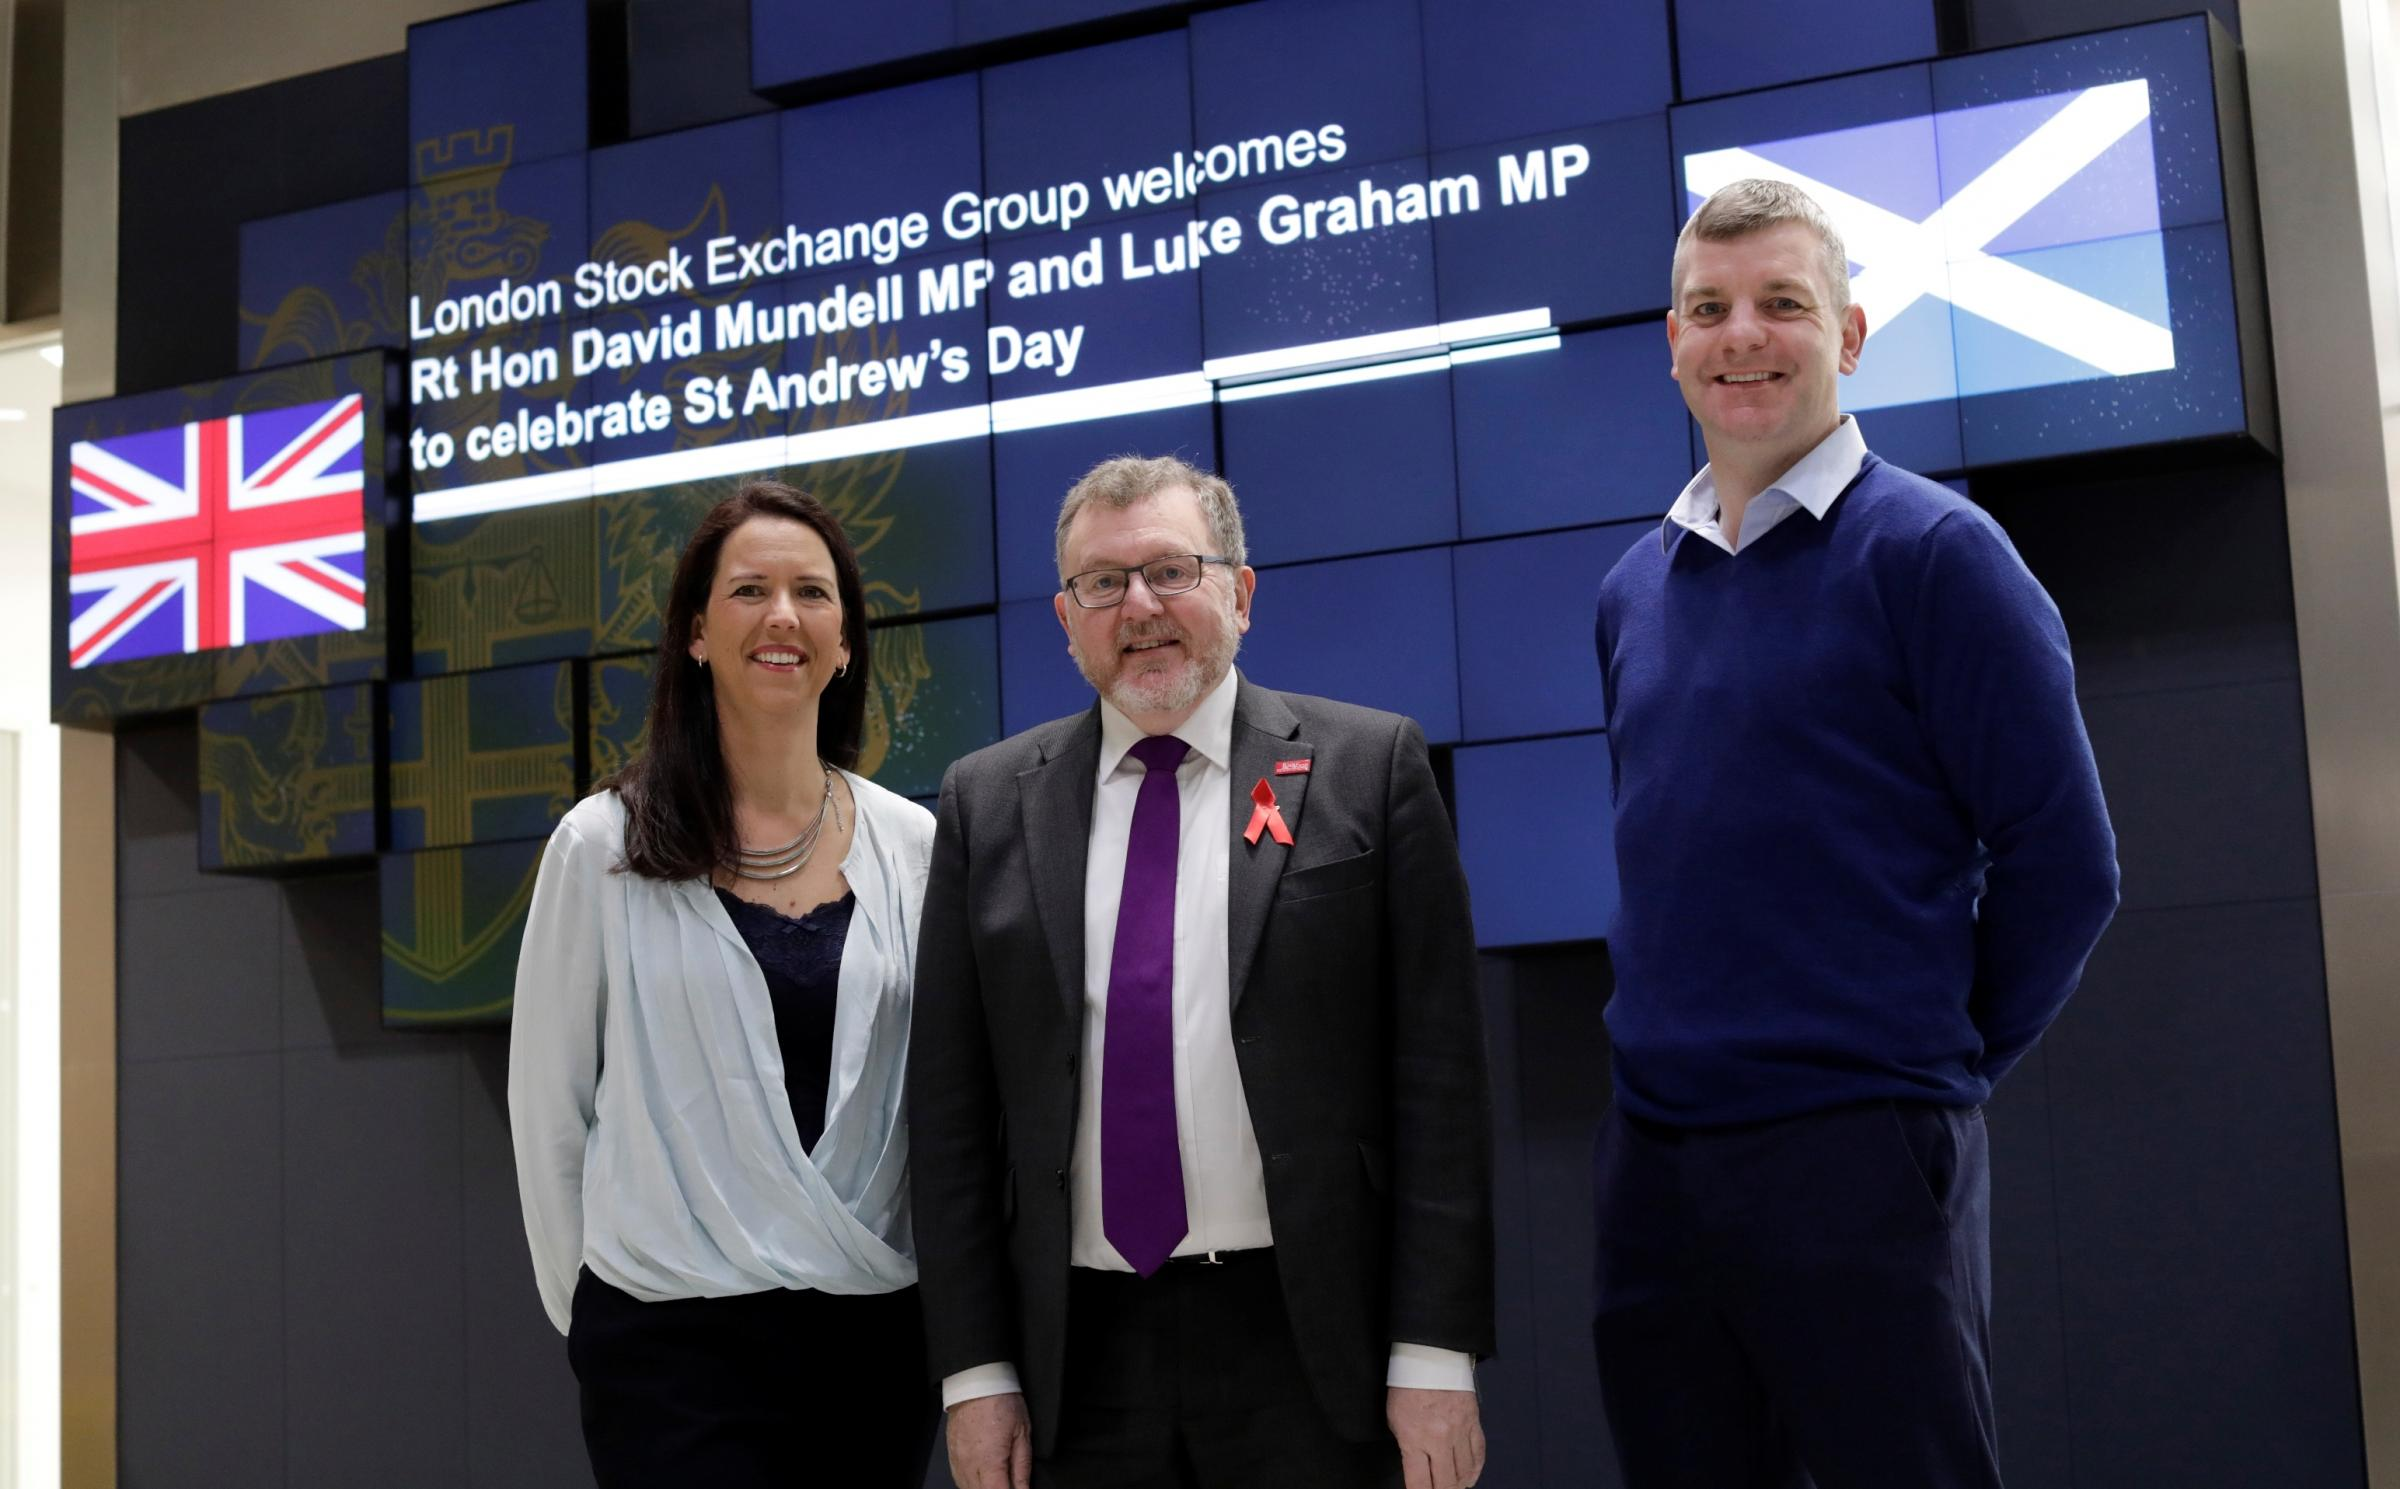 Mr Mundell with Ruth and David Hinks at the Stock Exchange